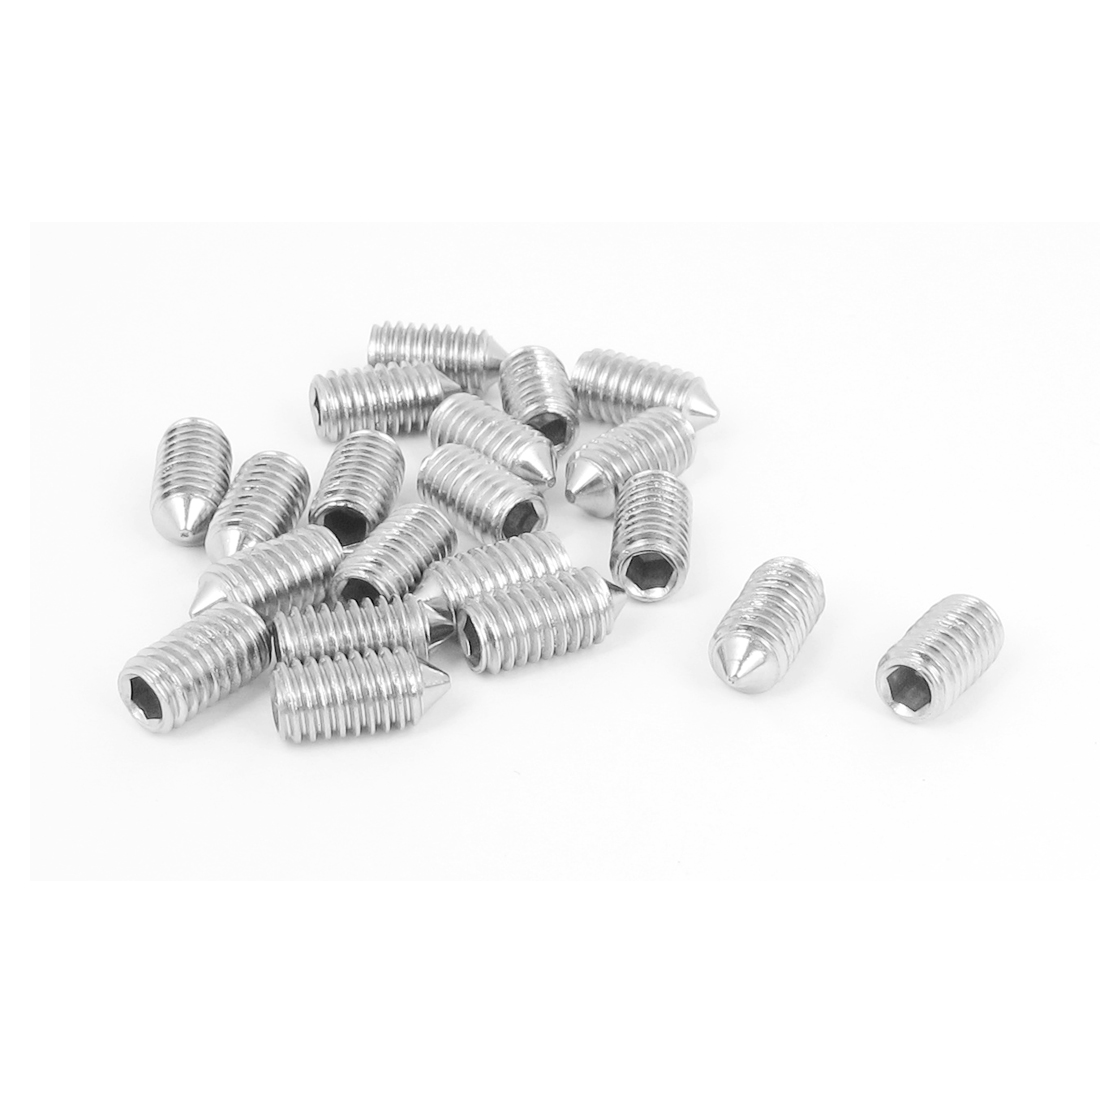 M6x12mm 304 Stainless Steel Cone Point Hexagon Socket Grub Screws 20pcs